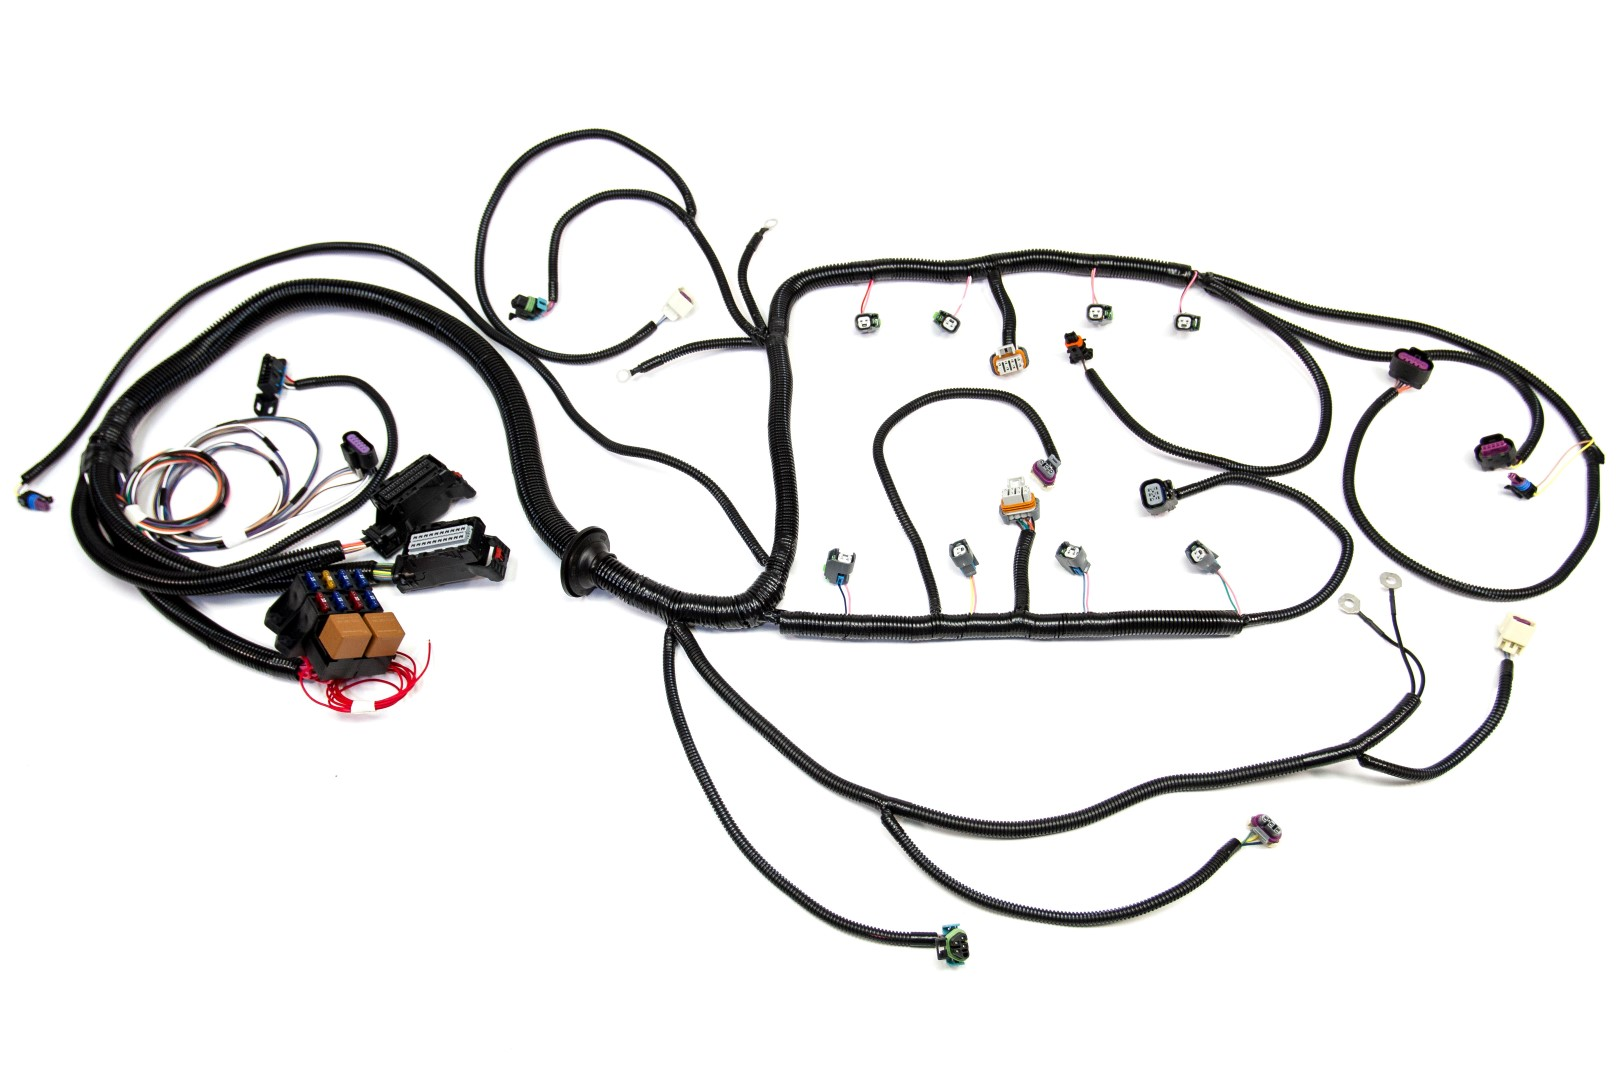 Ls 5 3 Wiring Harness Conversion Golden Schematic 62b24a604066b401459501c6d1051600 437965a4b2da3301459501a971051600 4a25b629ed24ec01459501e725051600